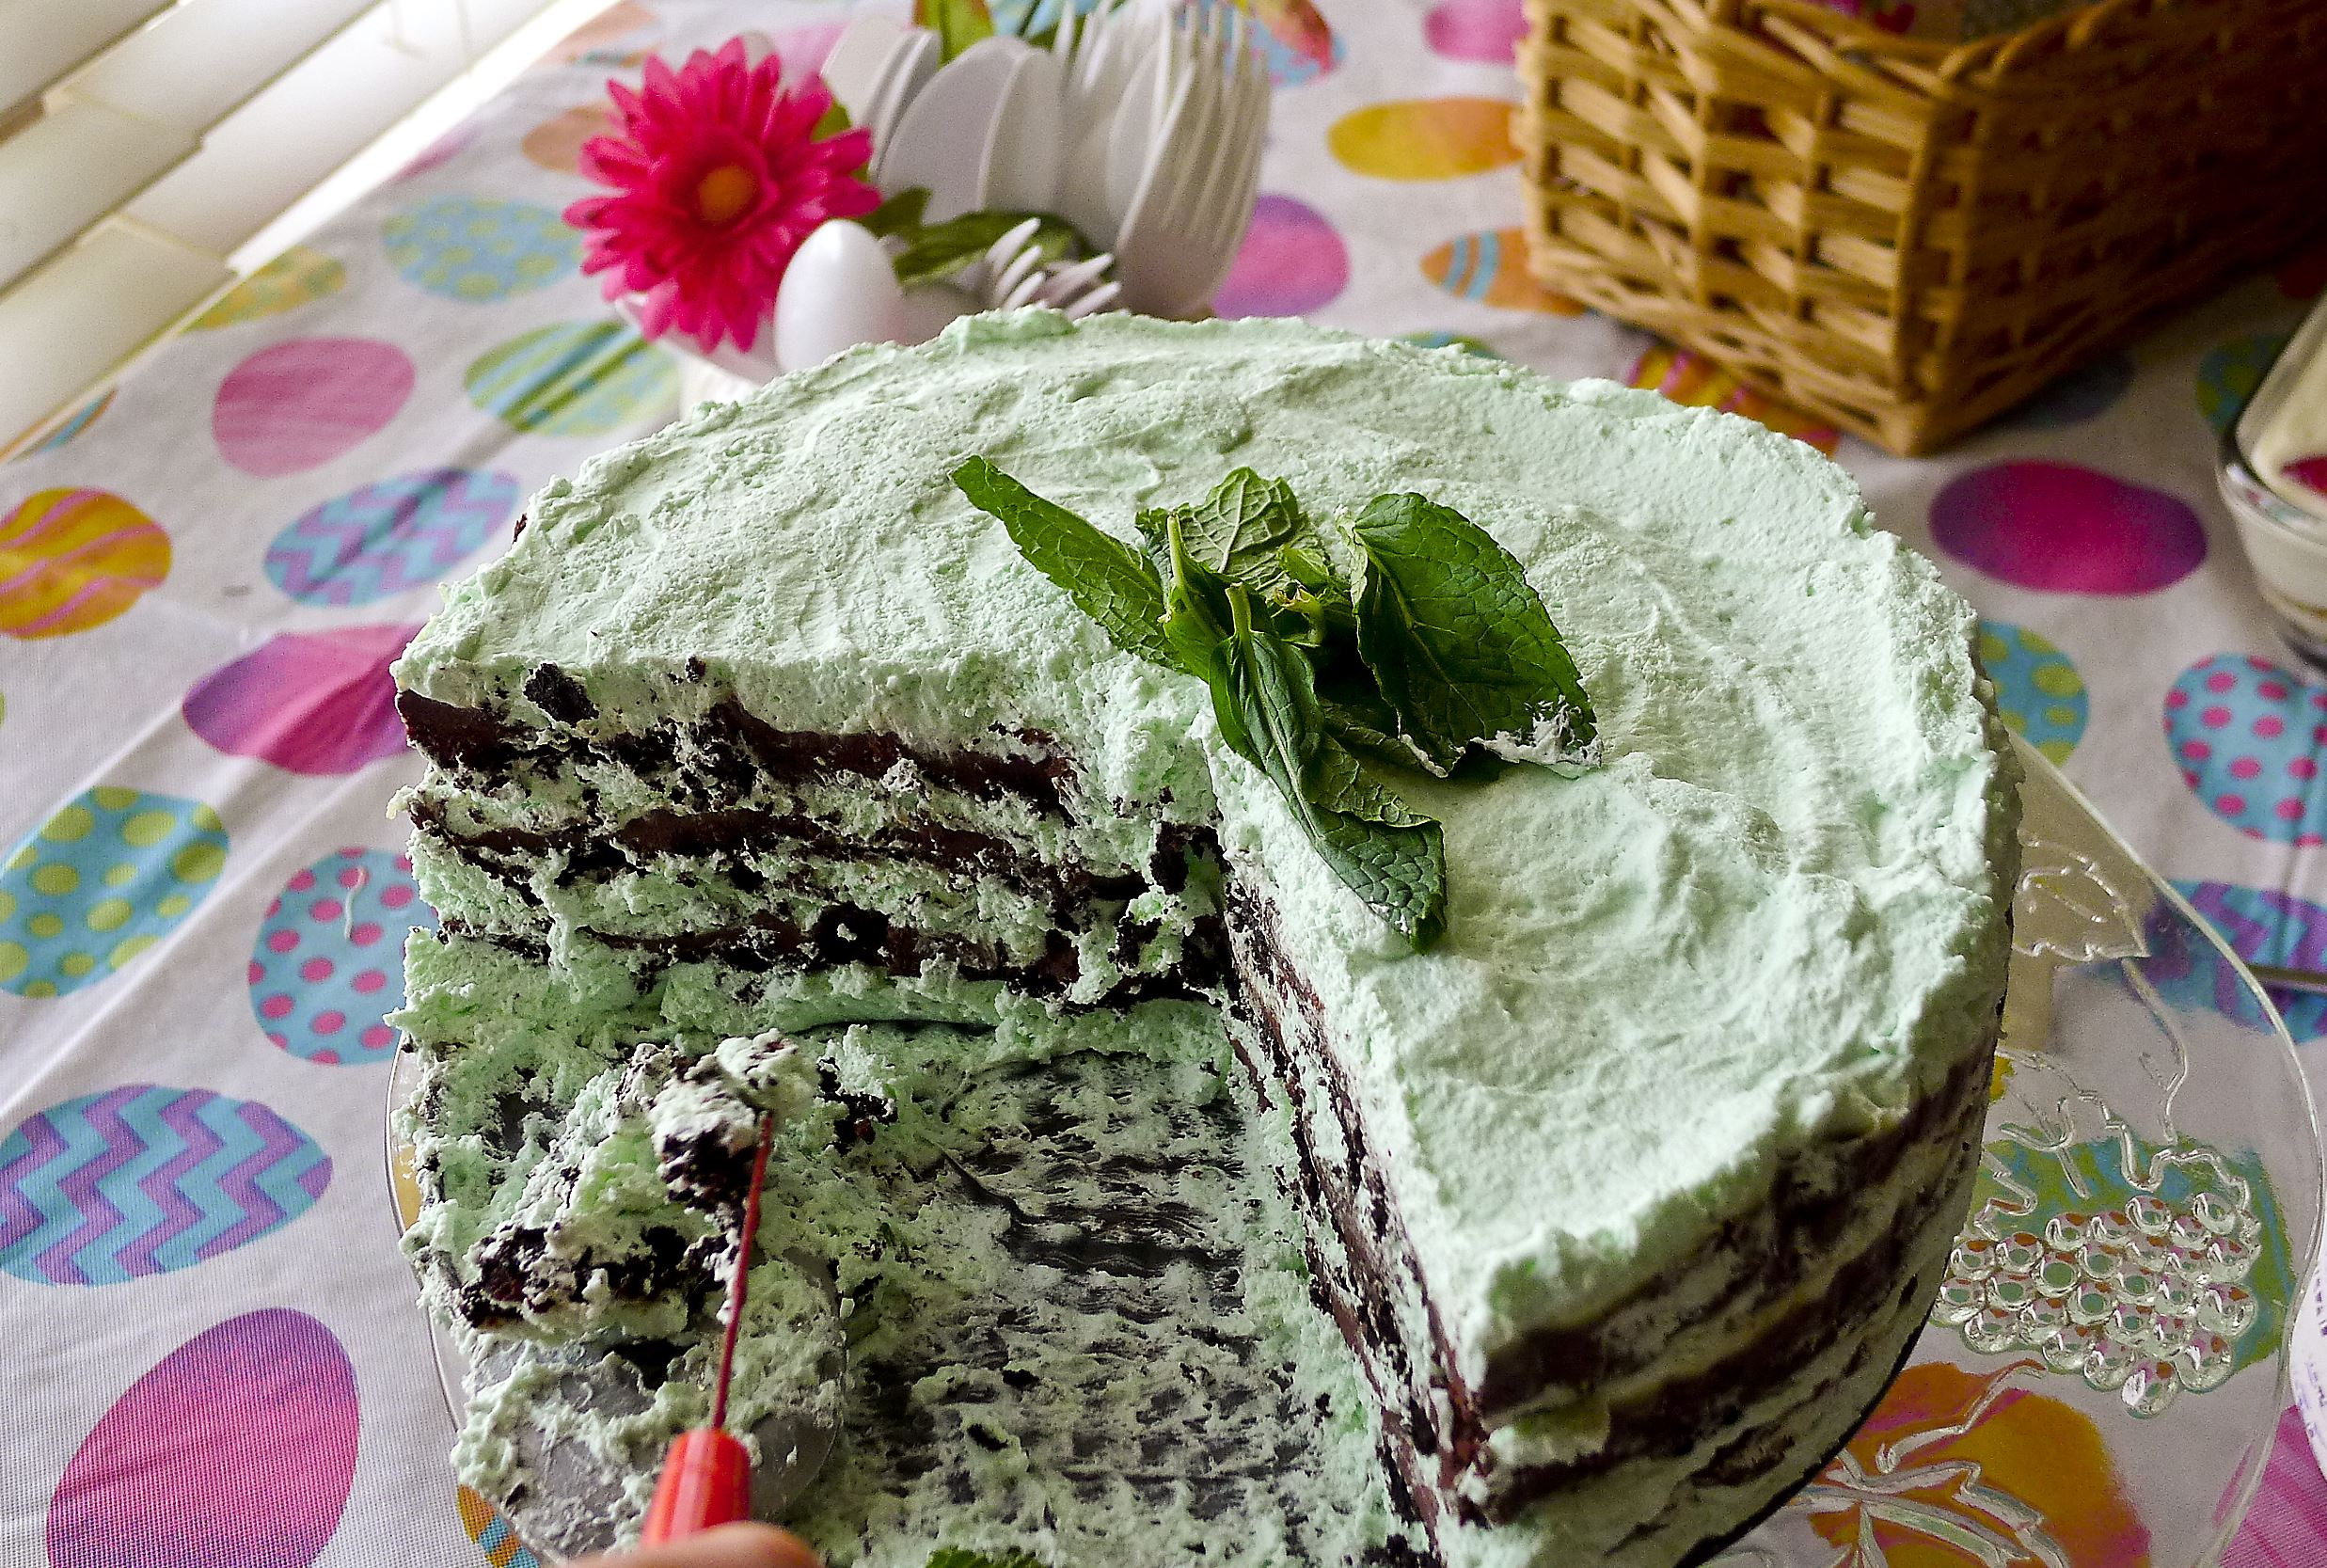 ... the coolest confection in town? Icebox cakes | Pittsburgh Post-Gazette